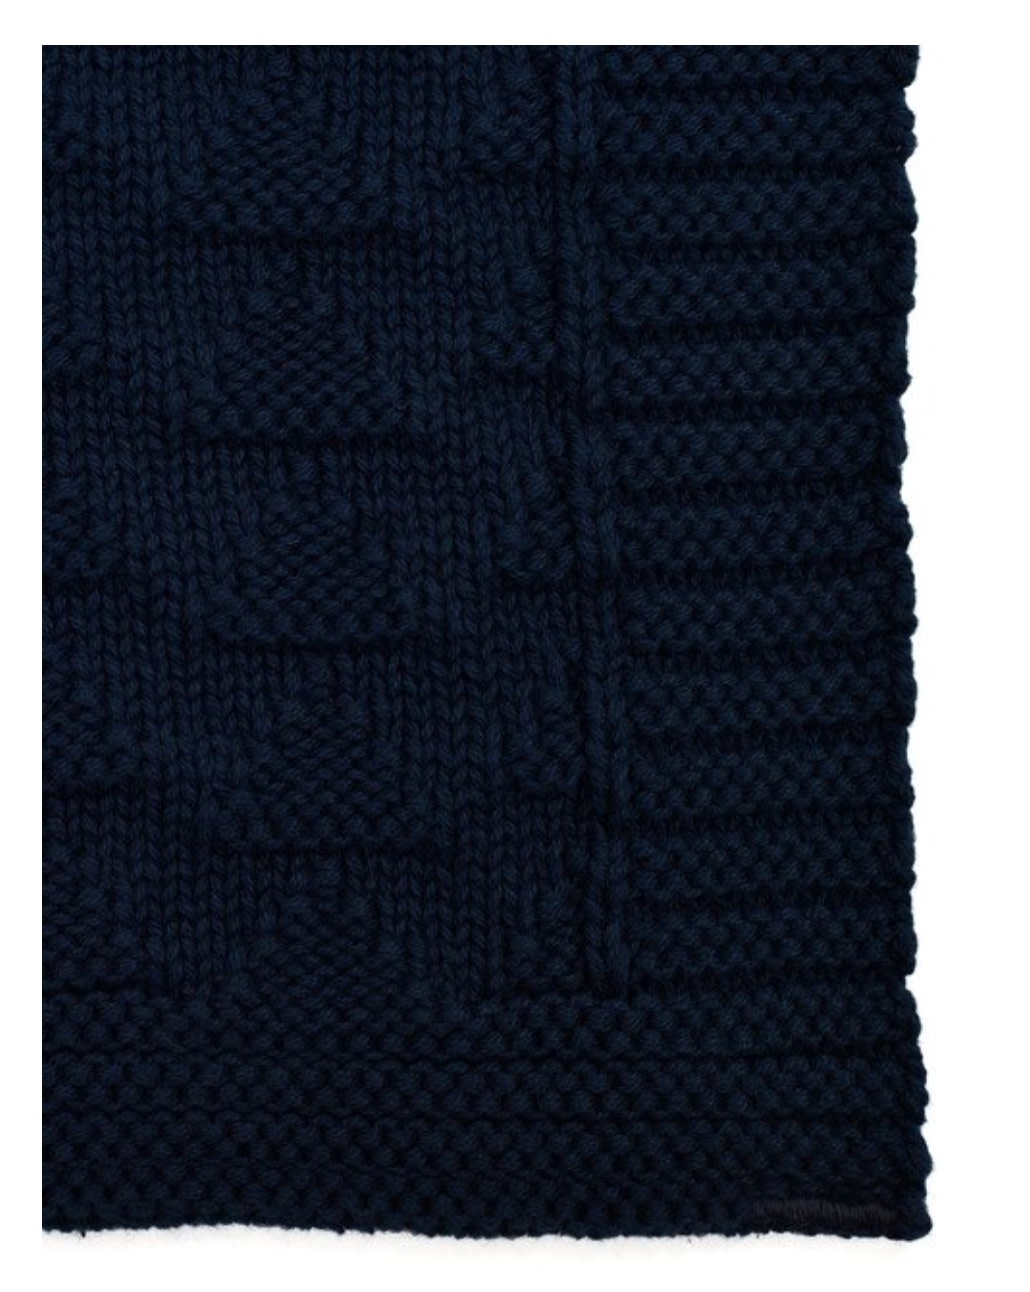 Green 3 Apparel Natural Cotton Textured Blanket - Navy